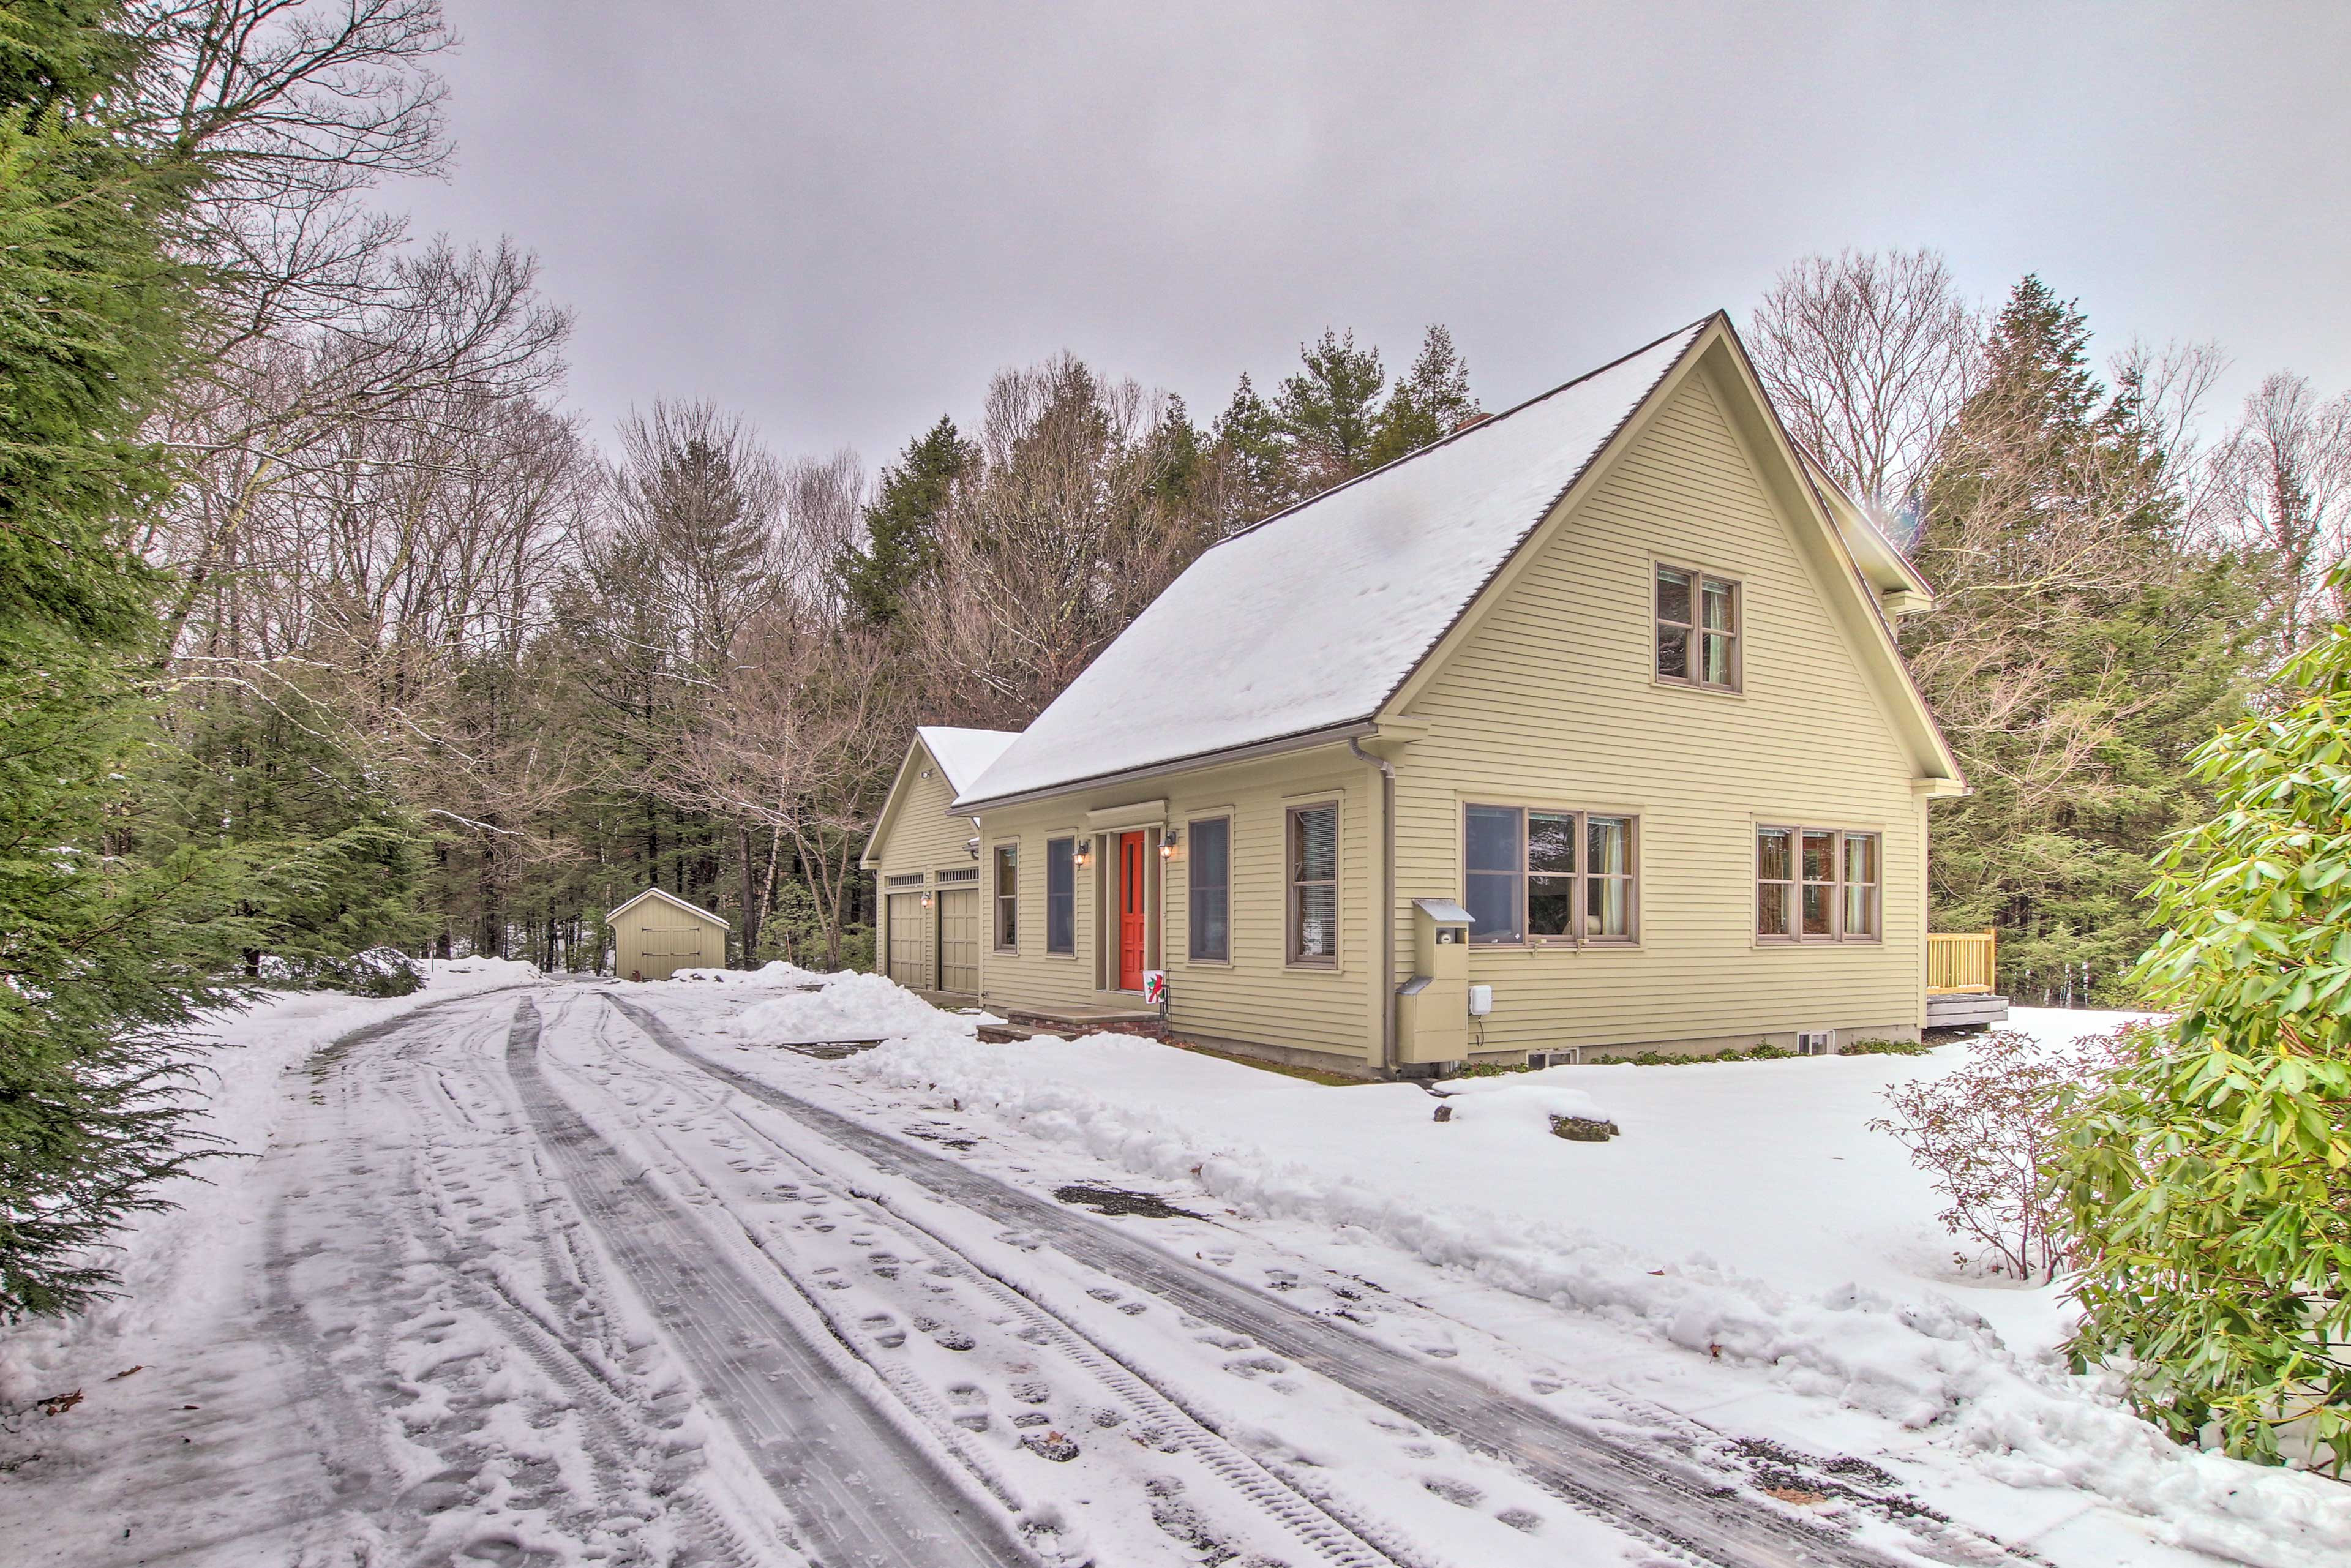 The home is located on nearly 8 acres - ensuring peace and quiet!